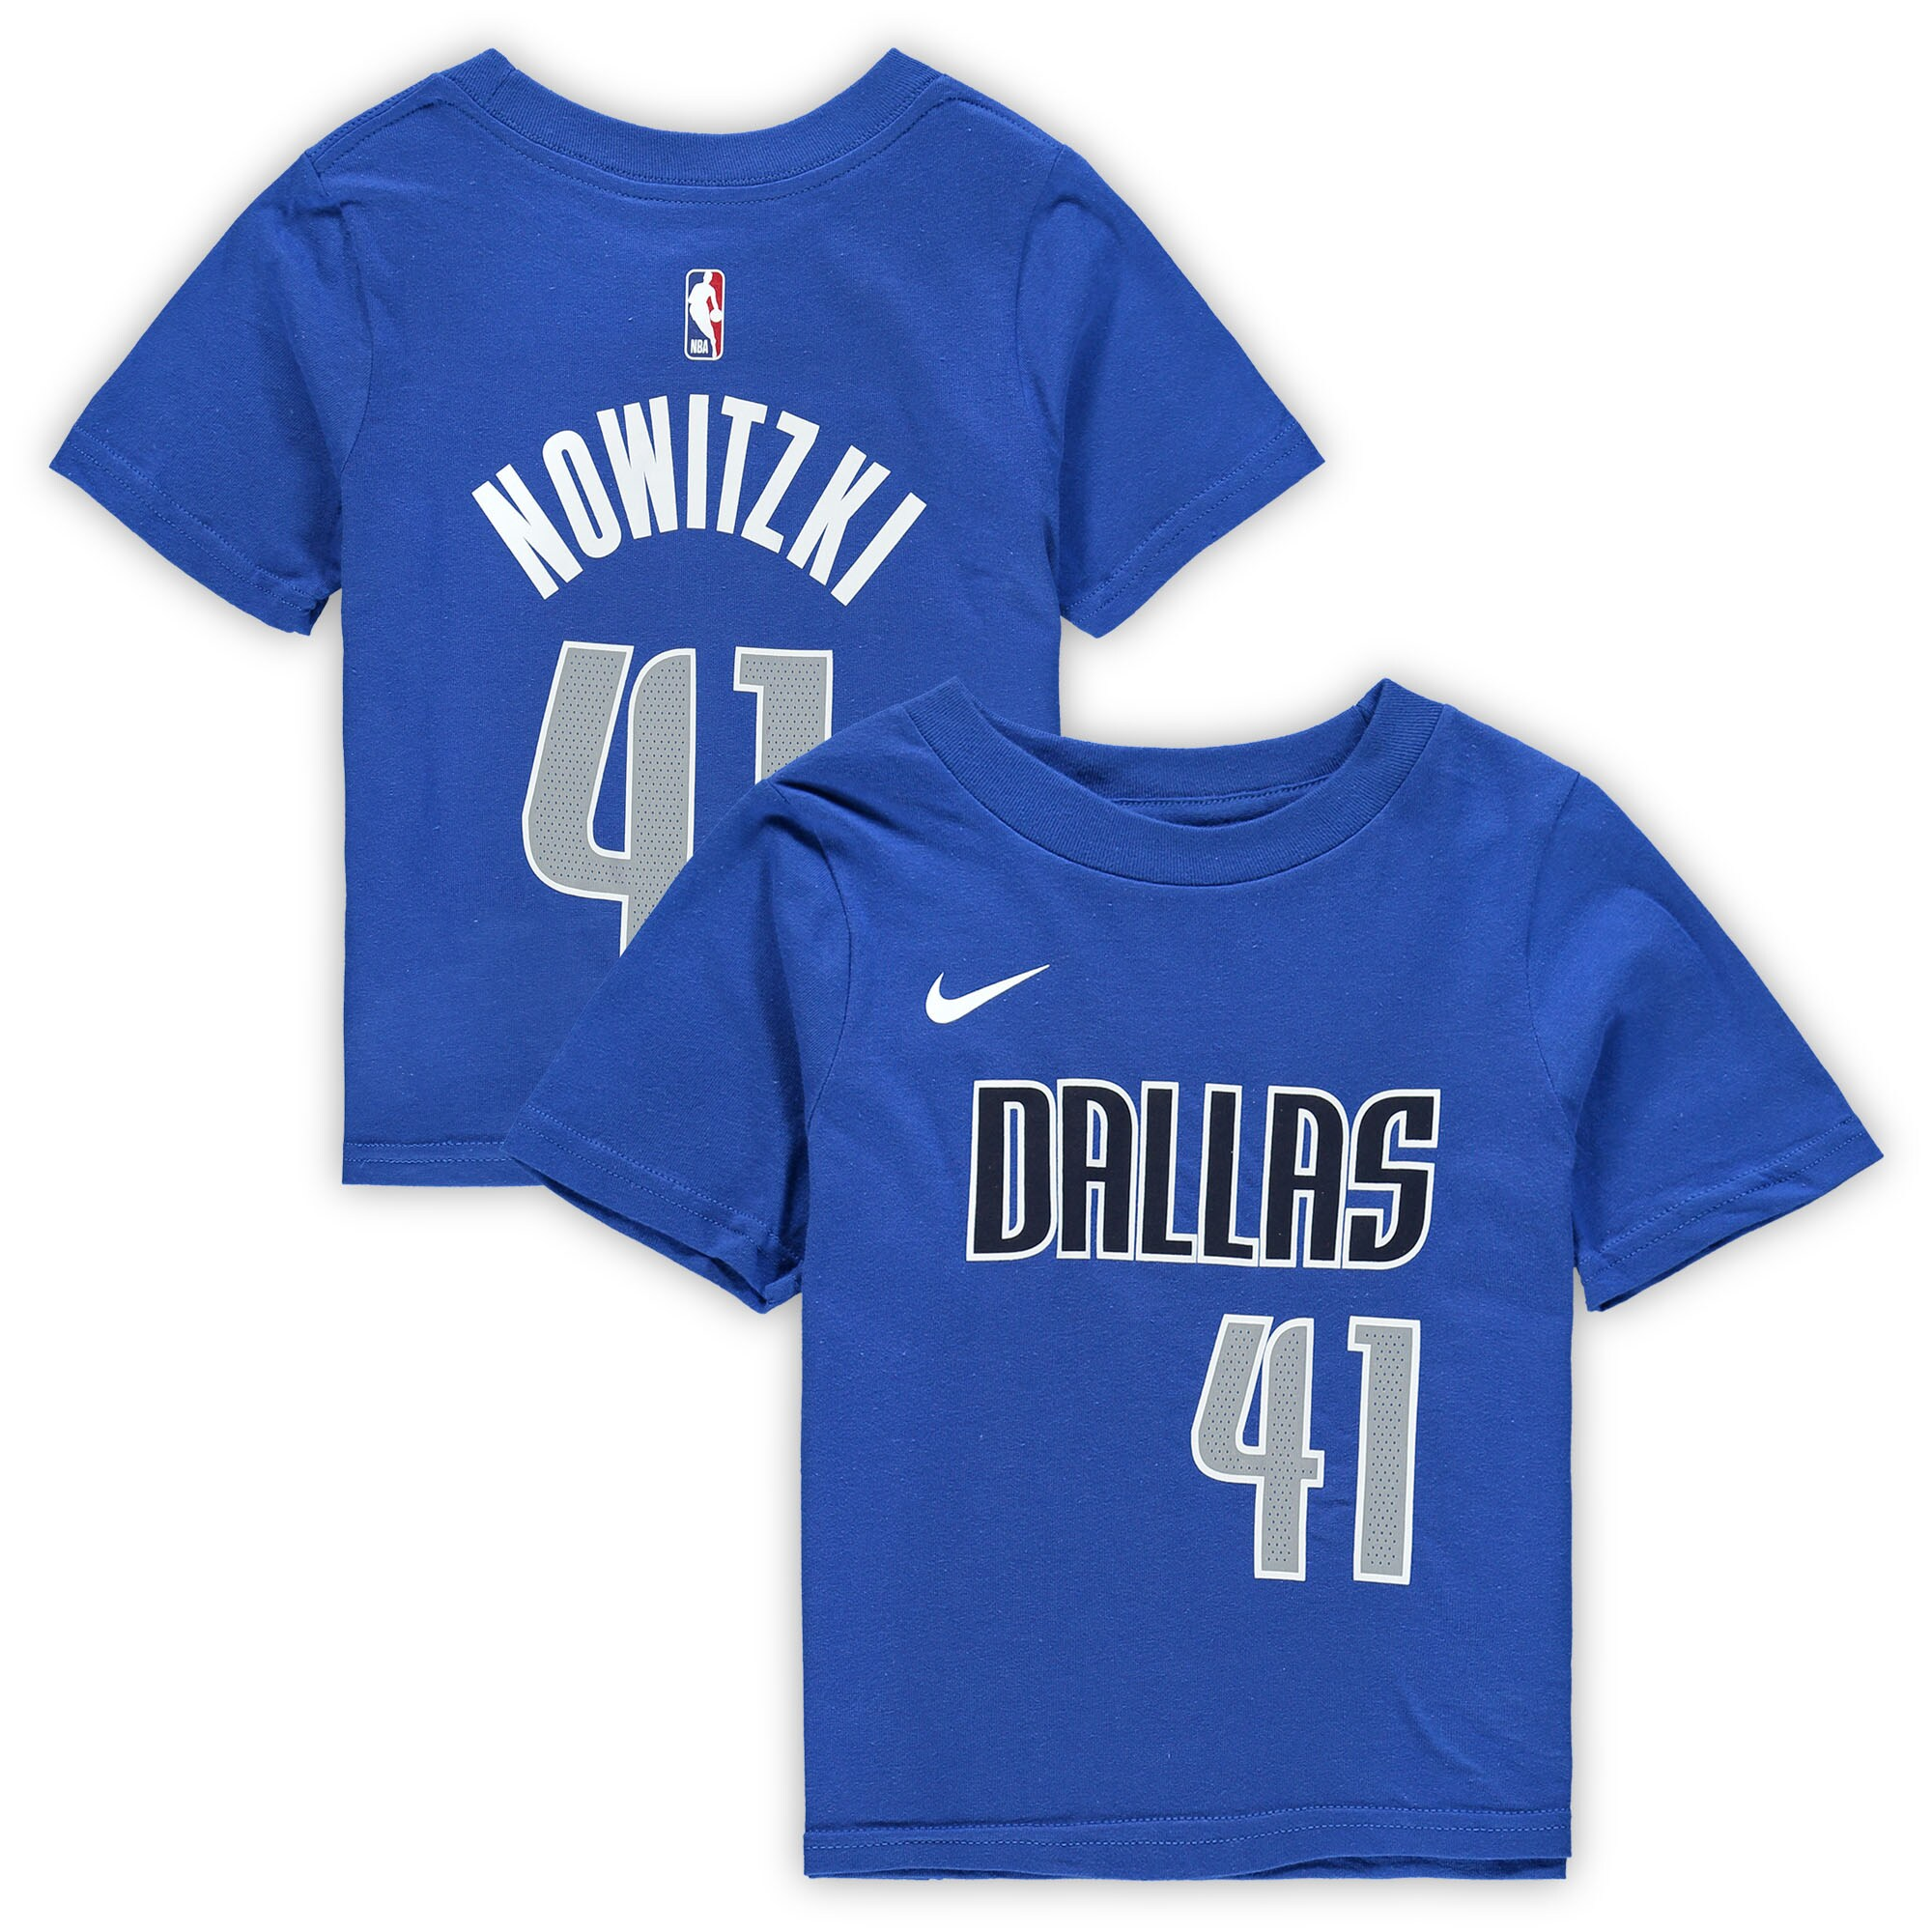 Dirk Nowitzki Dallas Mavericks Nike Toddler Name & Number T-Shirt - Blue